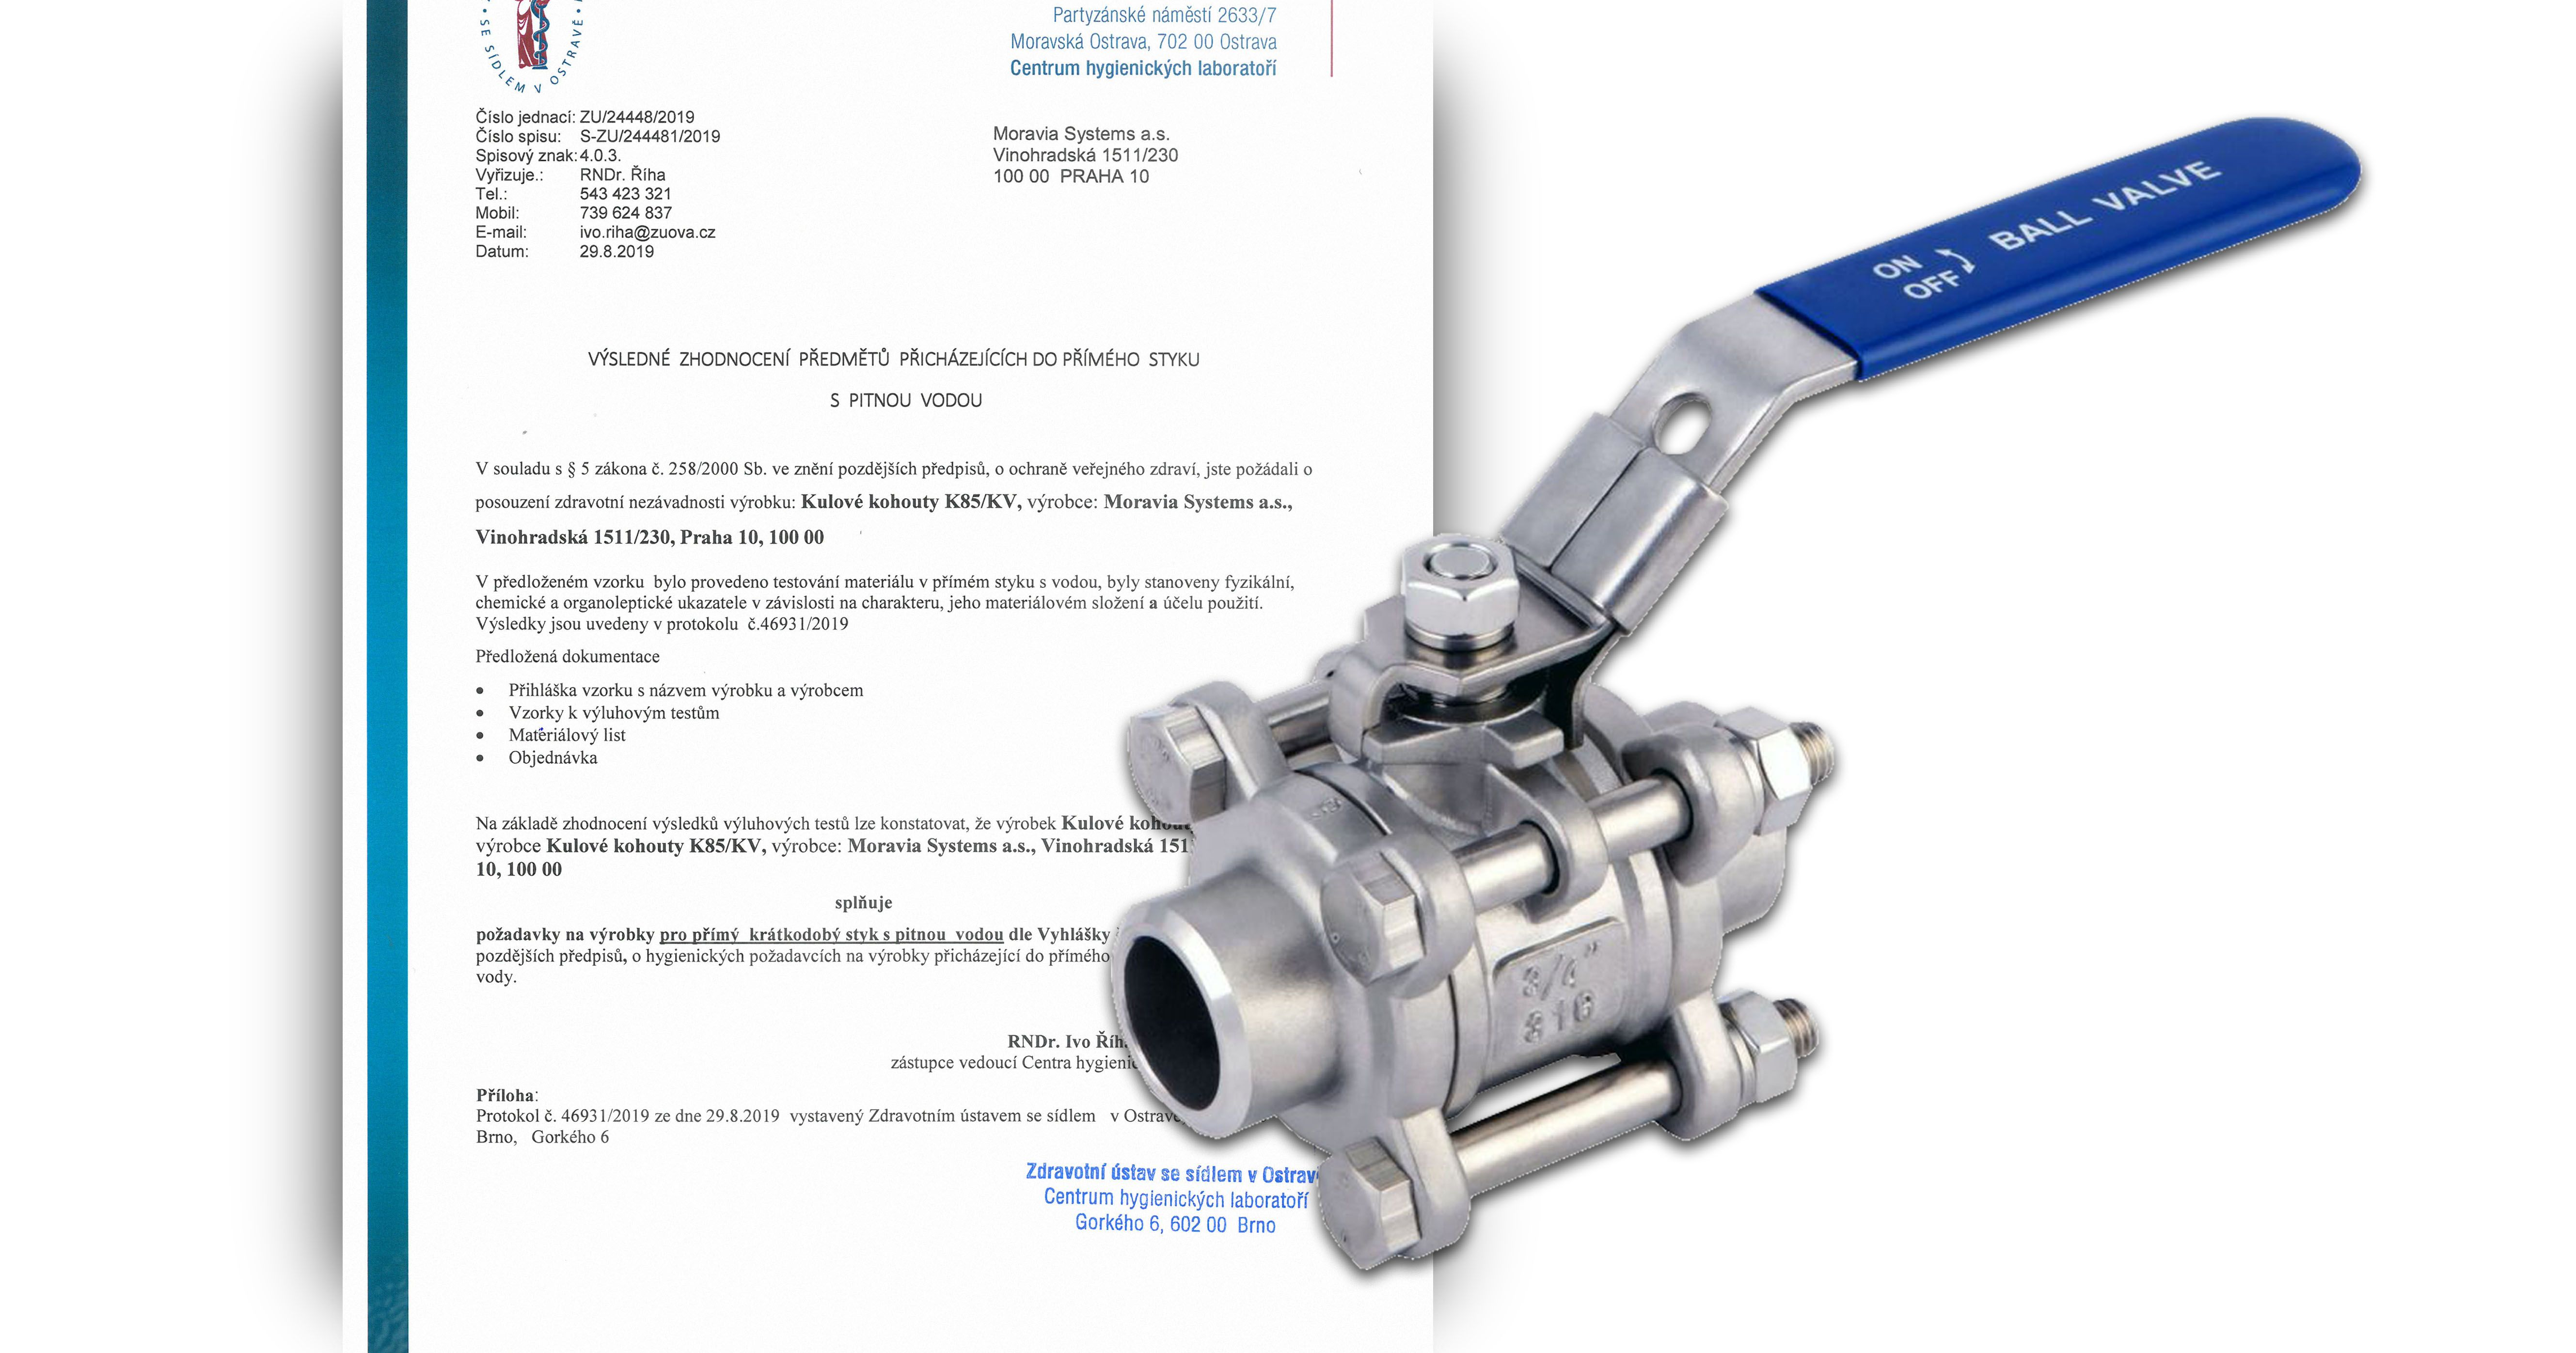 Approval of stainless steel ball valves K85 for drinking water use